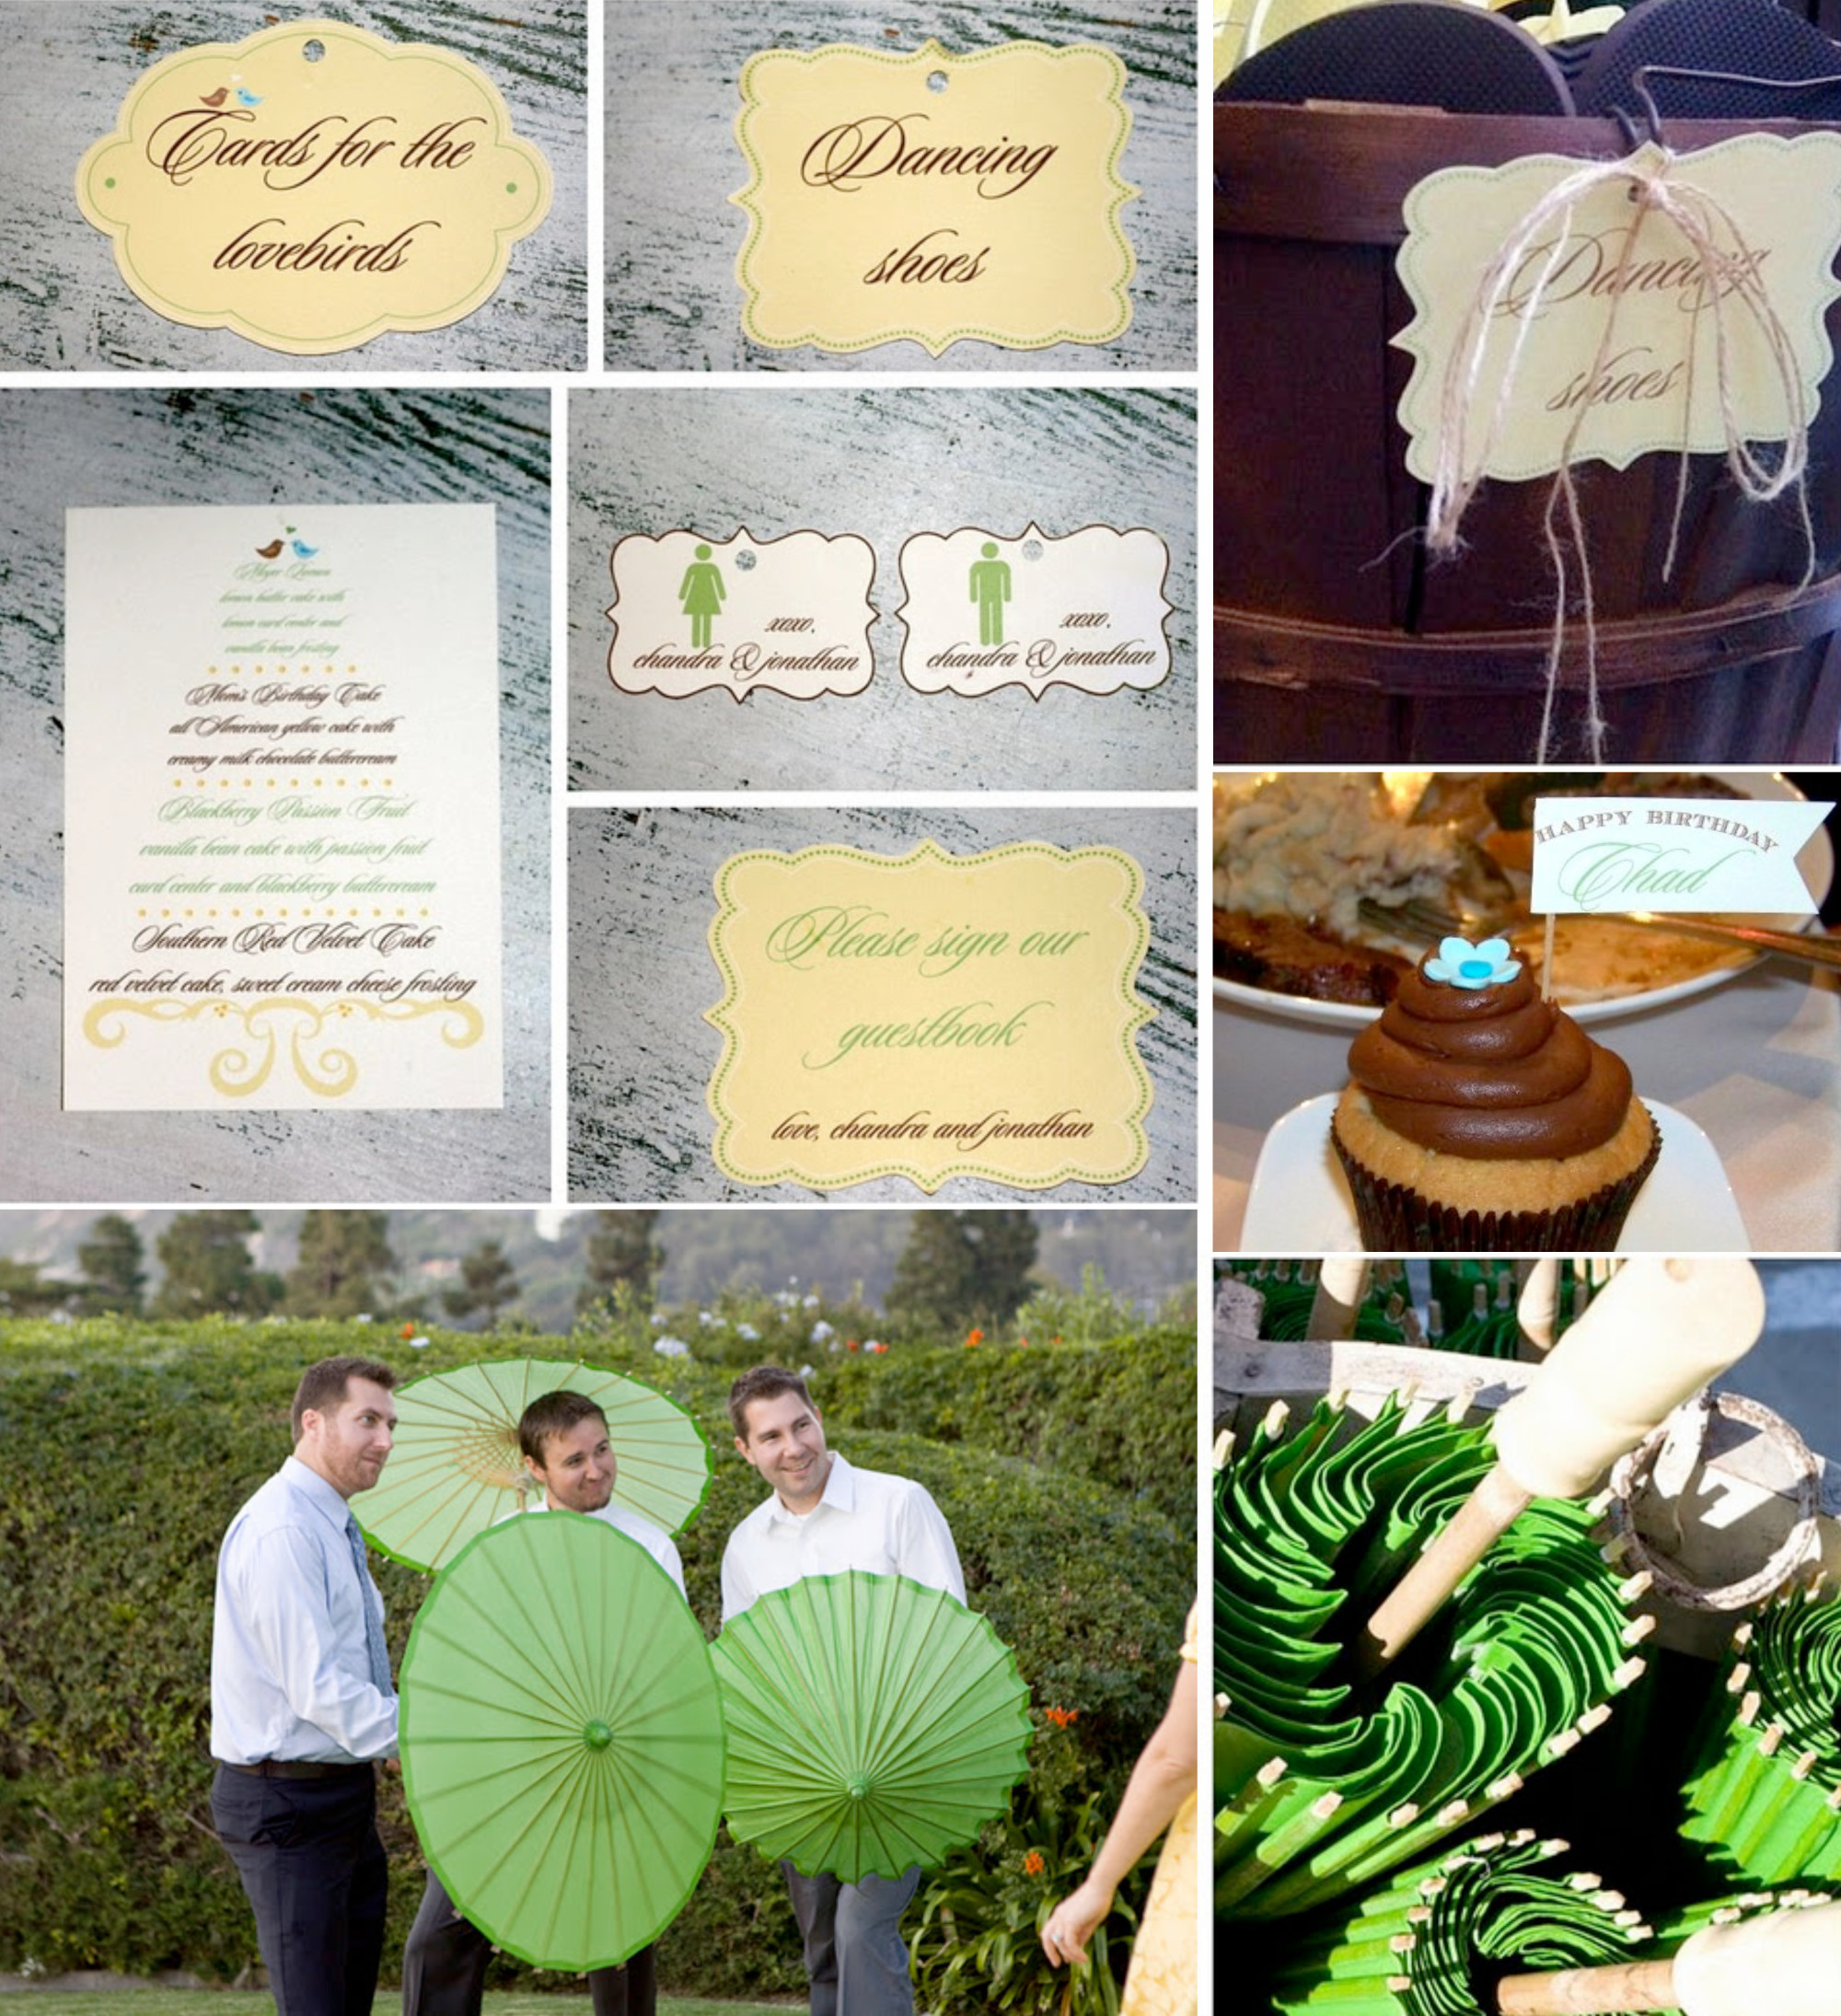 Best ideas about DIY Wedding Ideas On A Budget . Save or Pin Diy Rustic Bridal Shower Decorations Now.